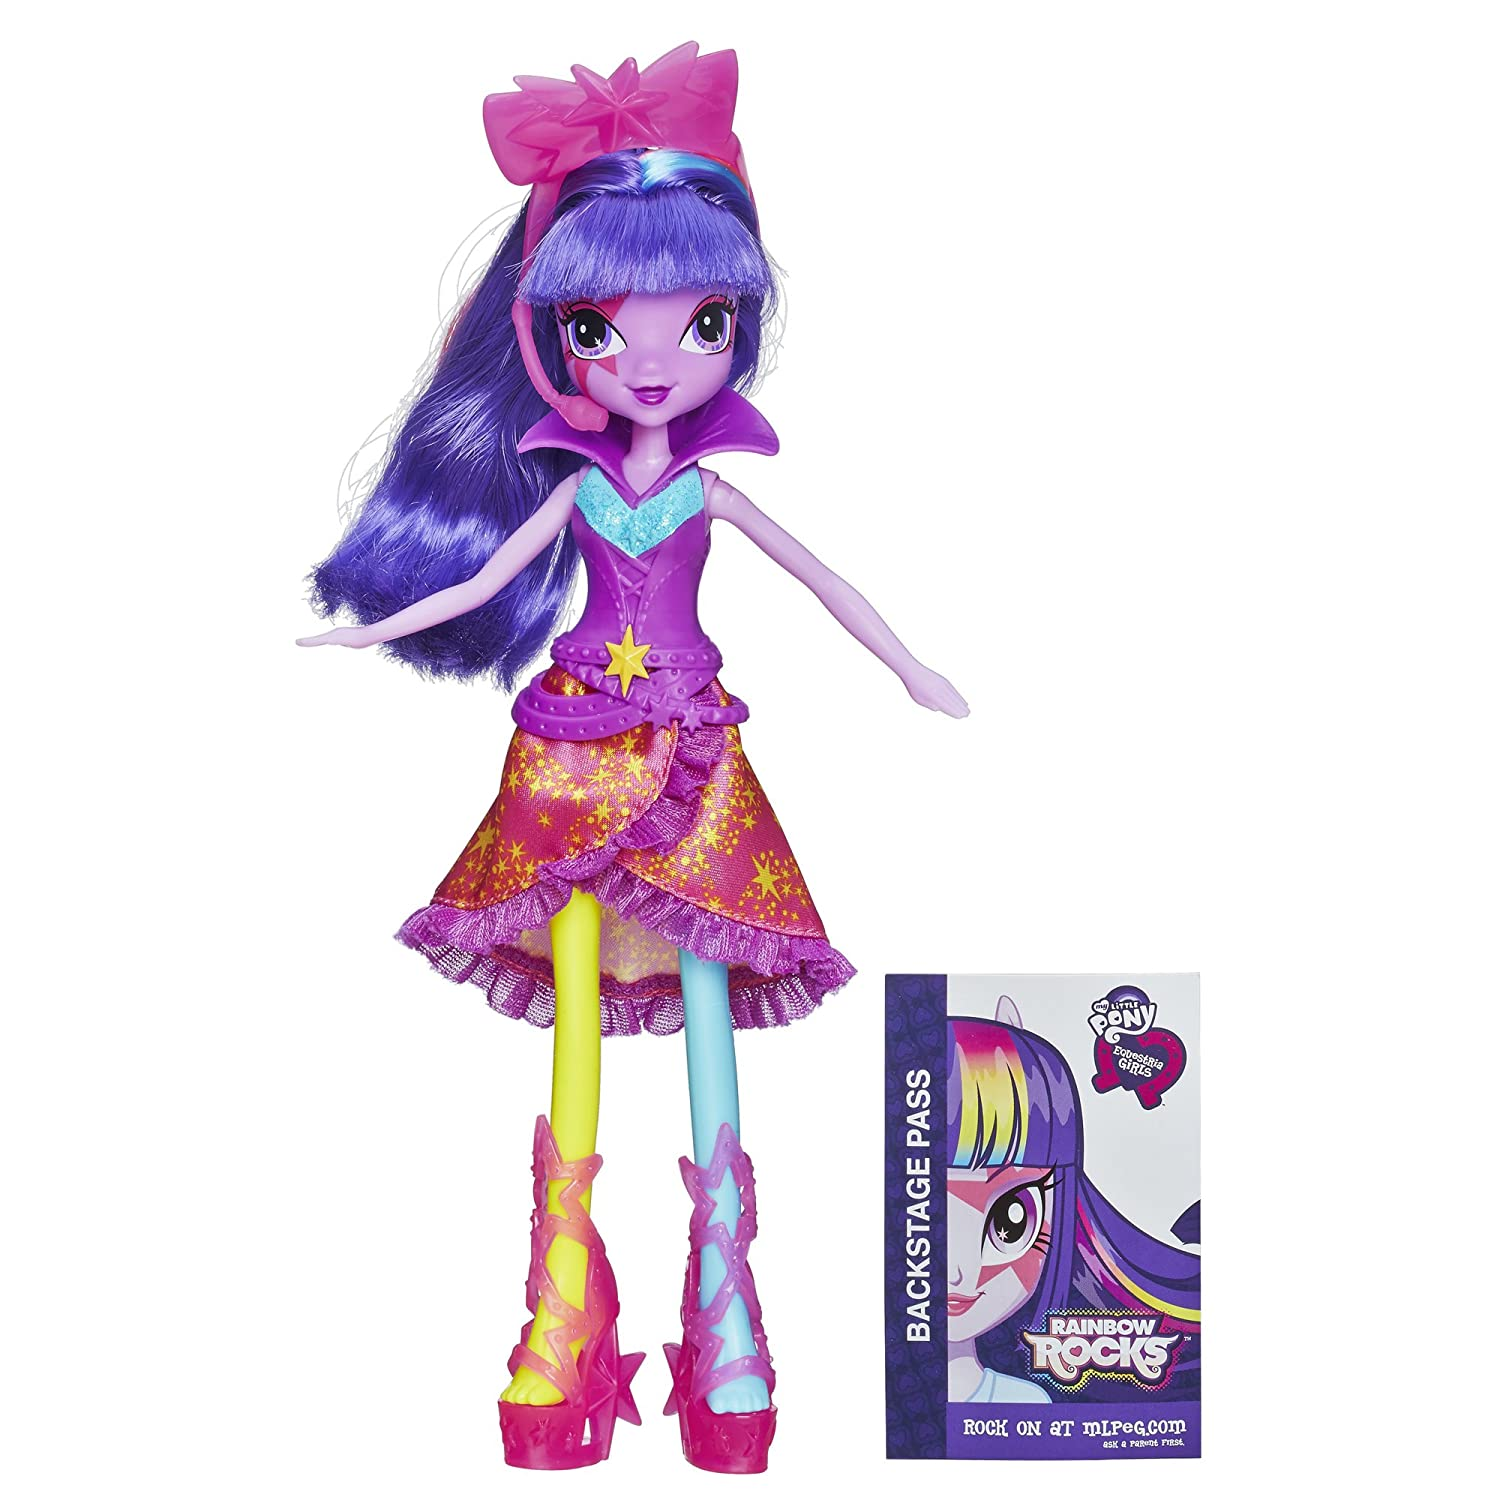 https://www.amazon.com/My-Little-Pony-Equestria-Twilight/dp/B00I67FFOU/ref=as_sl_pc_ss_til?tag=super0bb-20&linkCode=w01&linkId=YIMMPXEO23UEDBNP&creativeASIN=B00I67FFOU